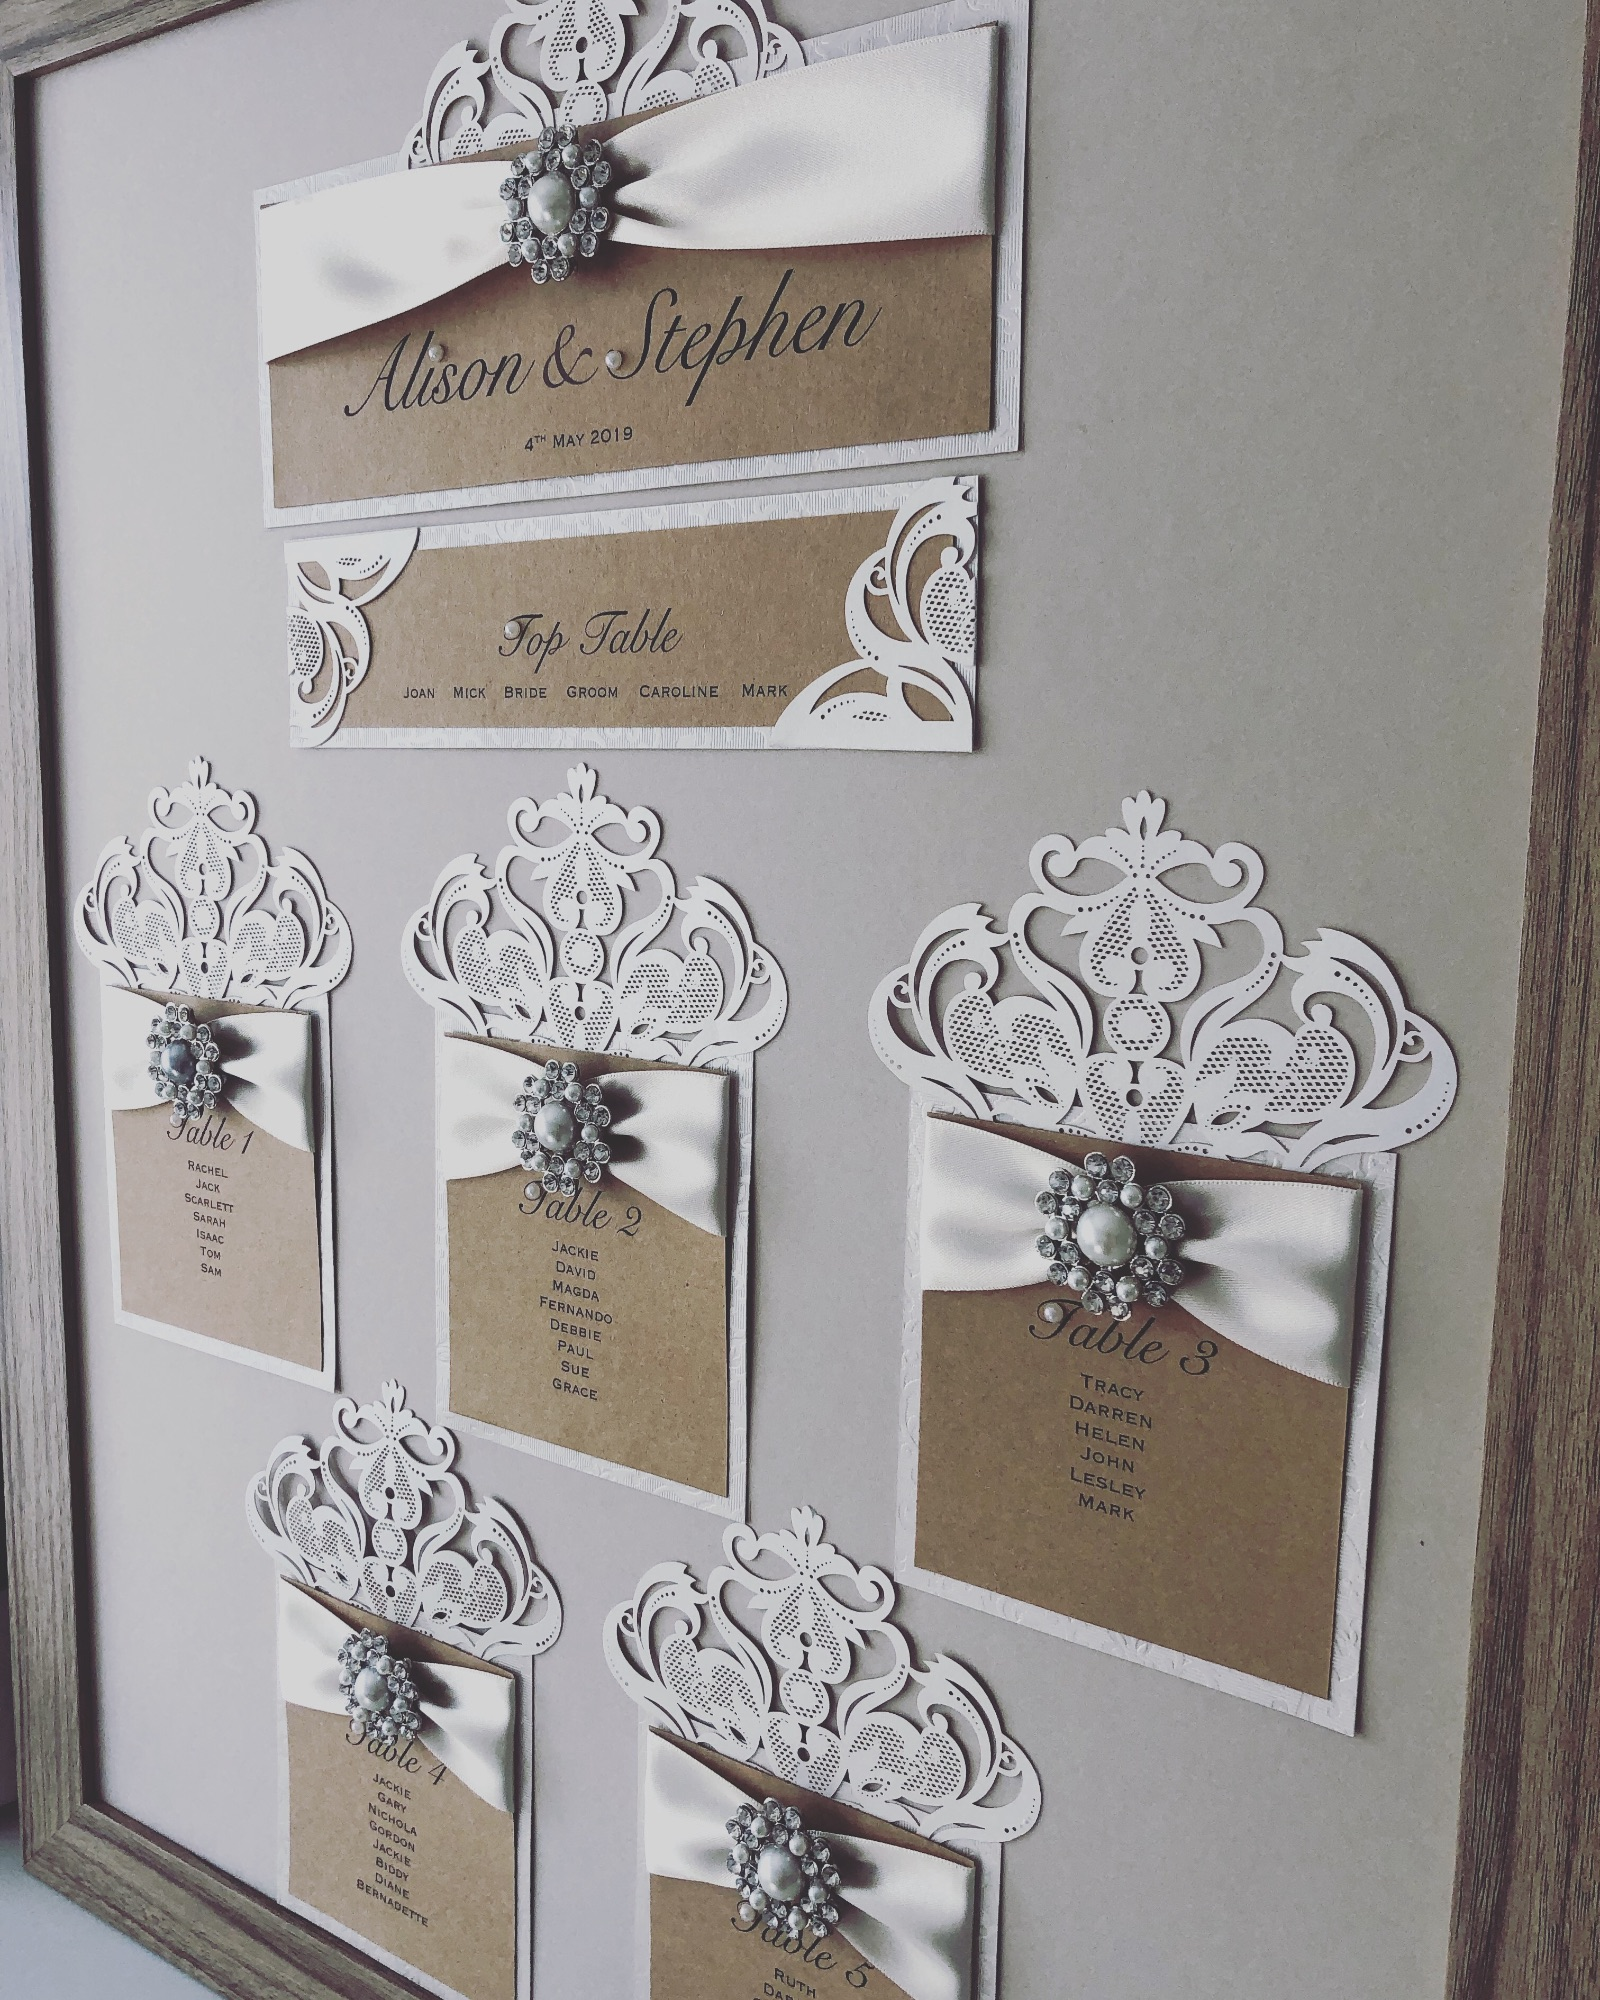 Rustic style seating plan with laser cut detailing and pearl brooch